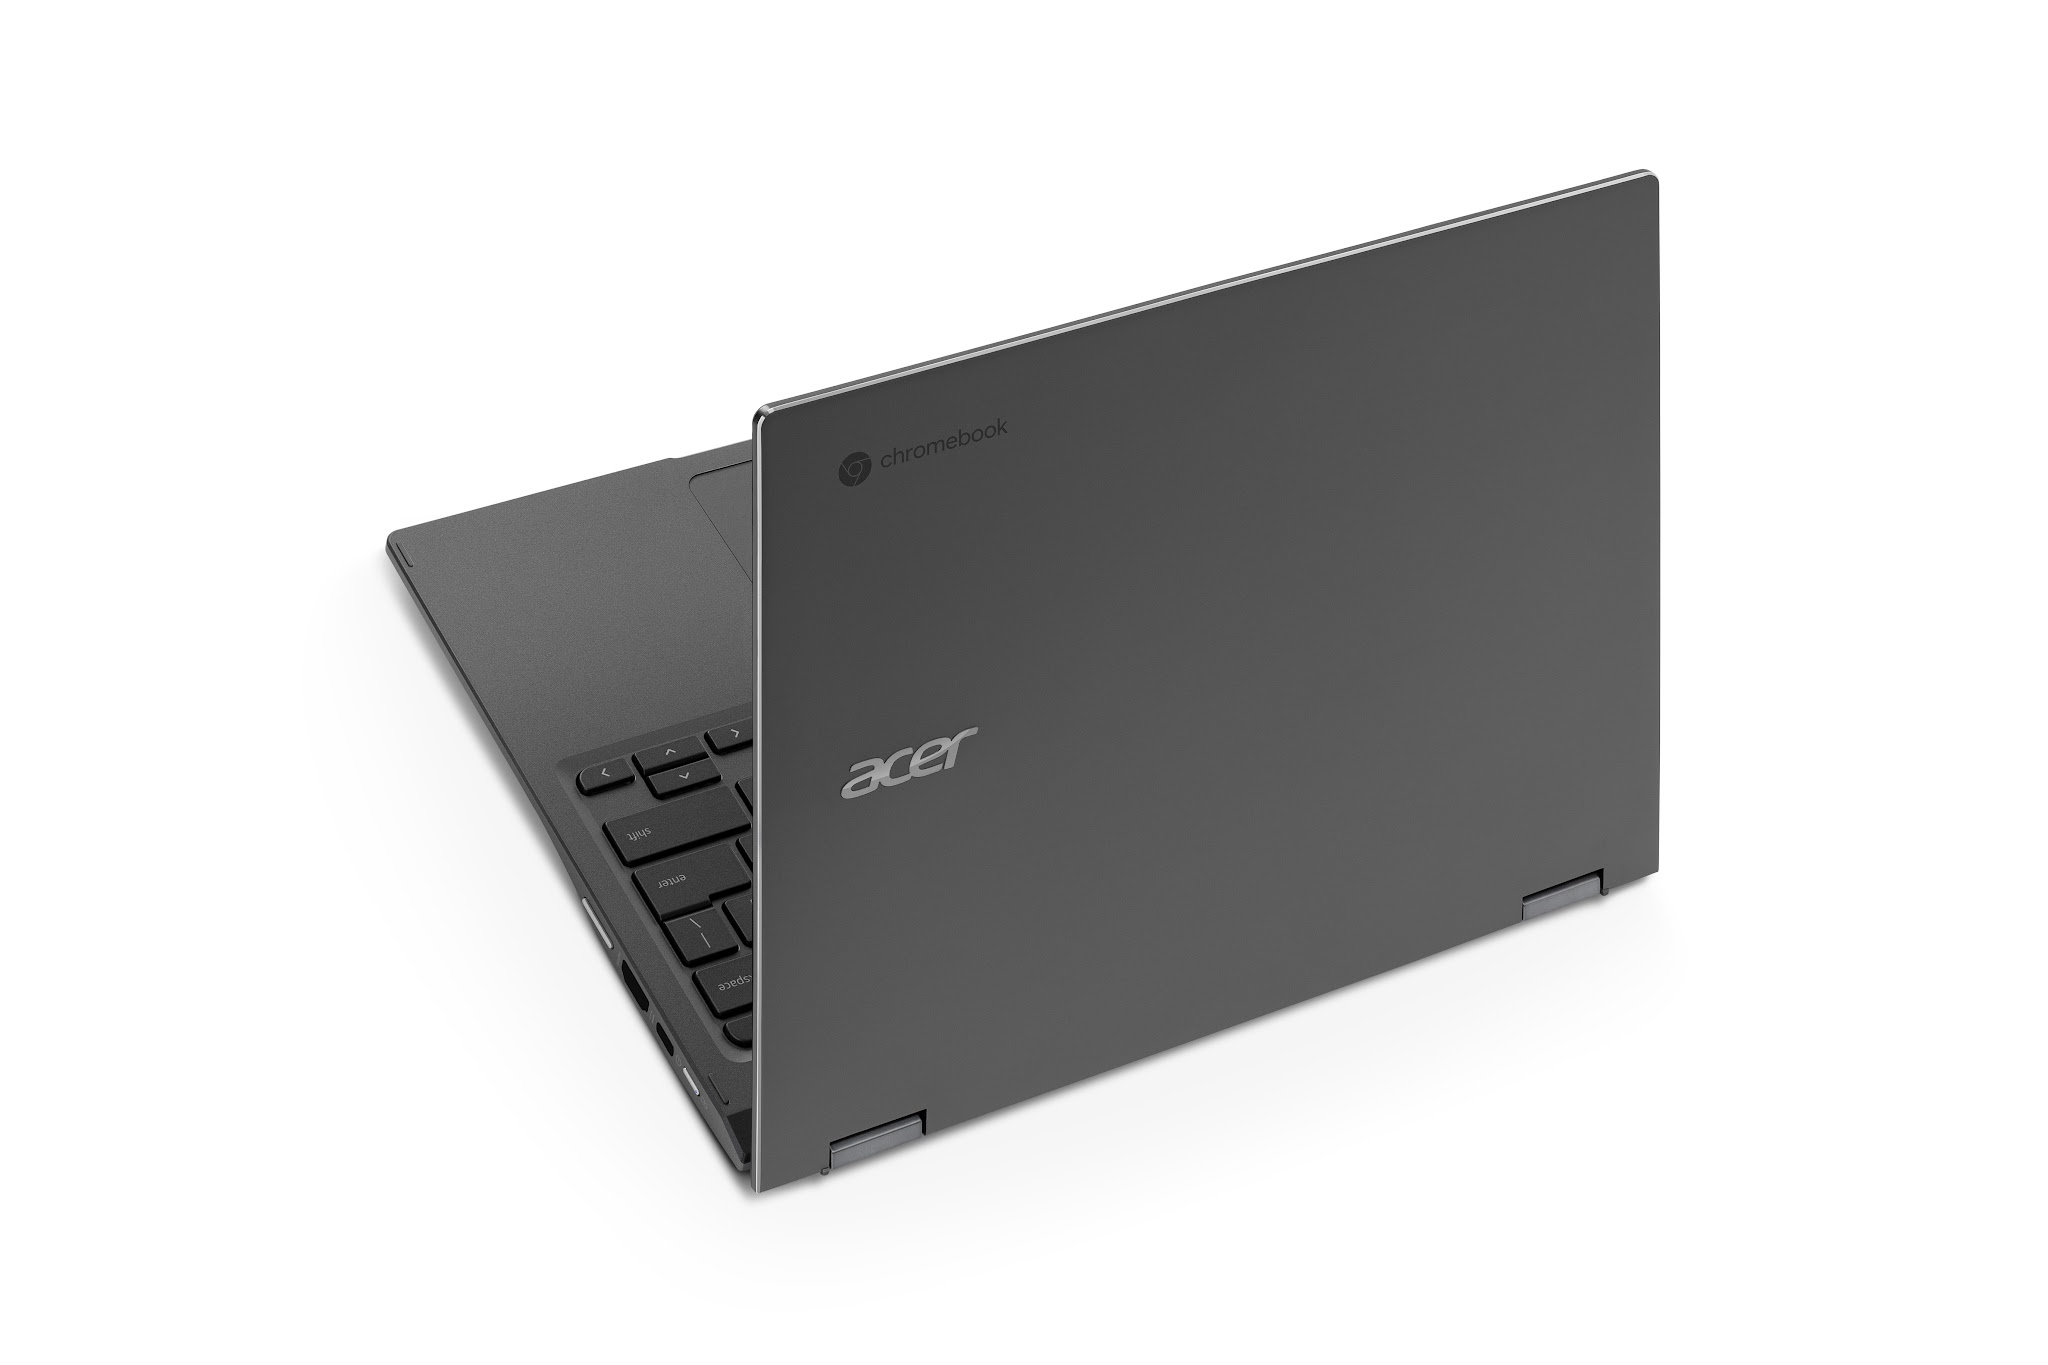 Acer Chromebook Spin 713 - photo 13